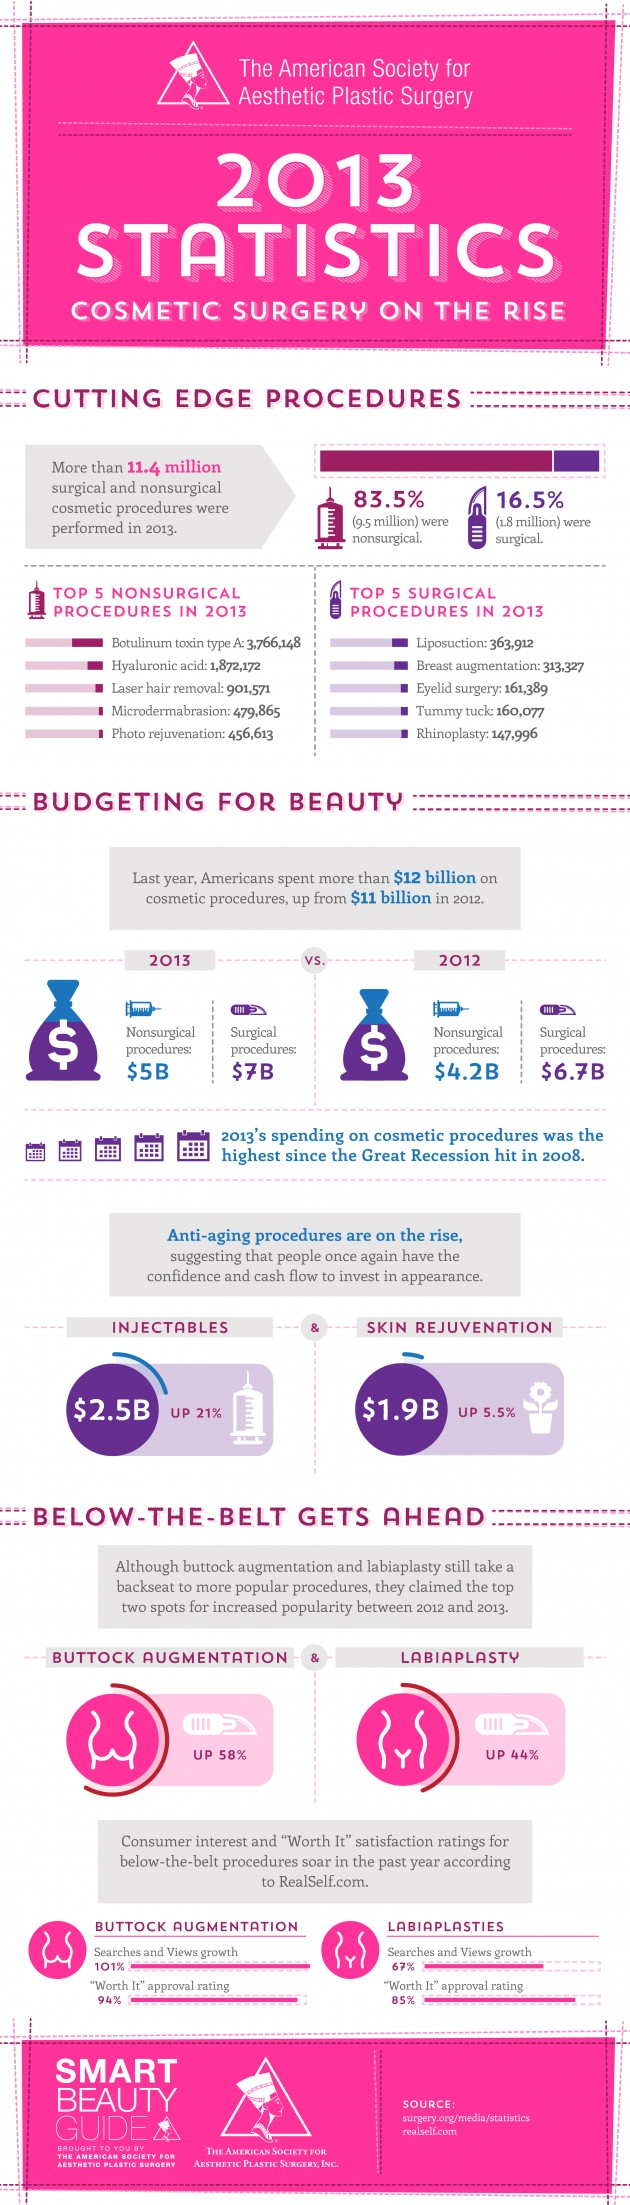 Statistics 2013: Cosmetic surgery on the rise [INFOGRAPHIC]